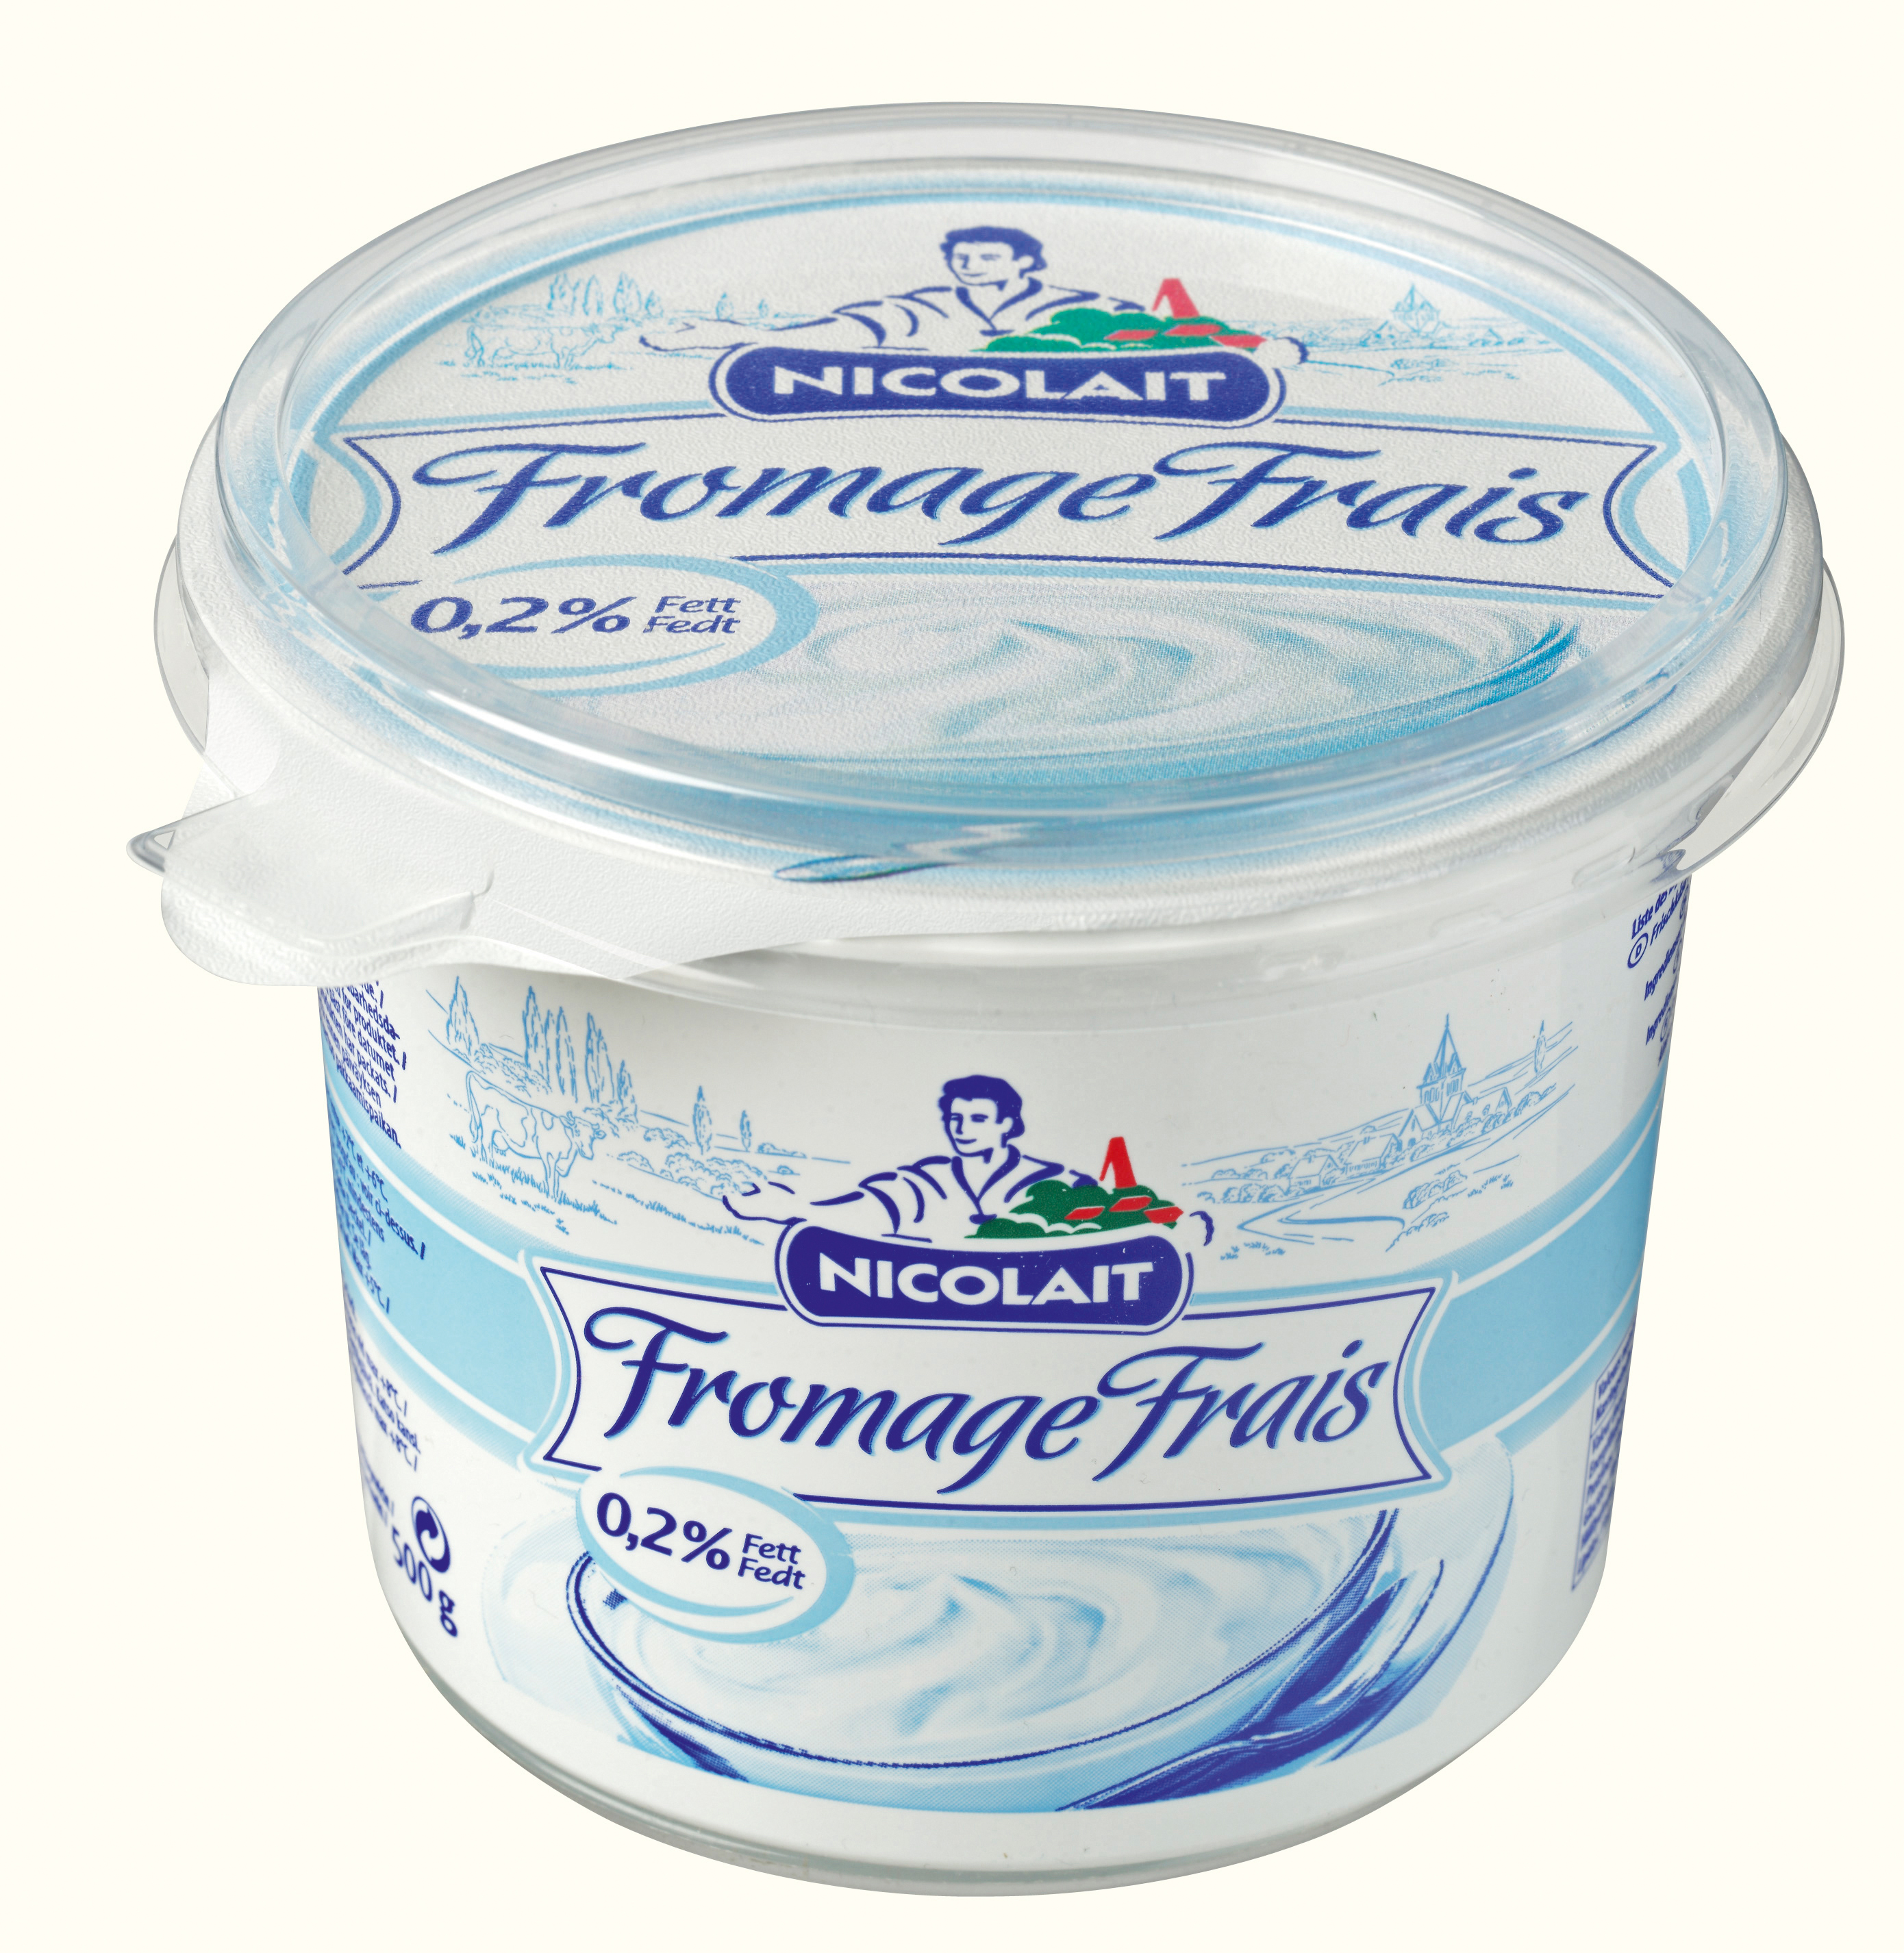 Furniture commercial furniture furniture furniture and furnishings - Nicolait Fromage Frais 0 2 Fett 500 Grams Lactalis